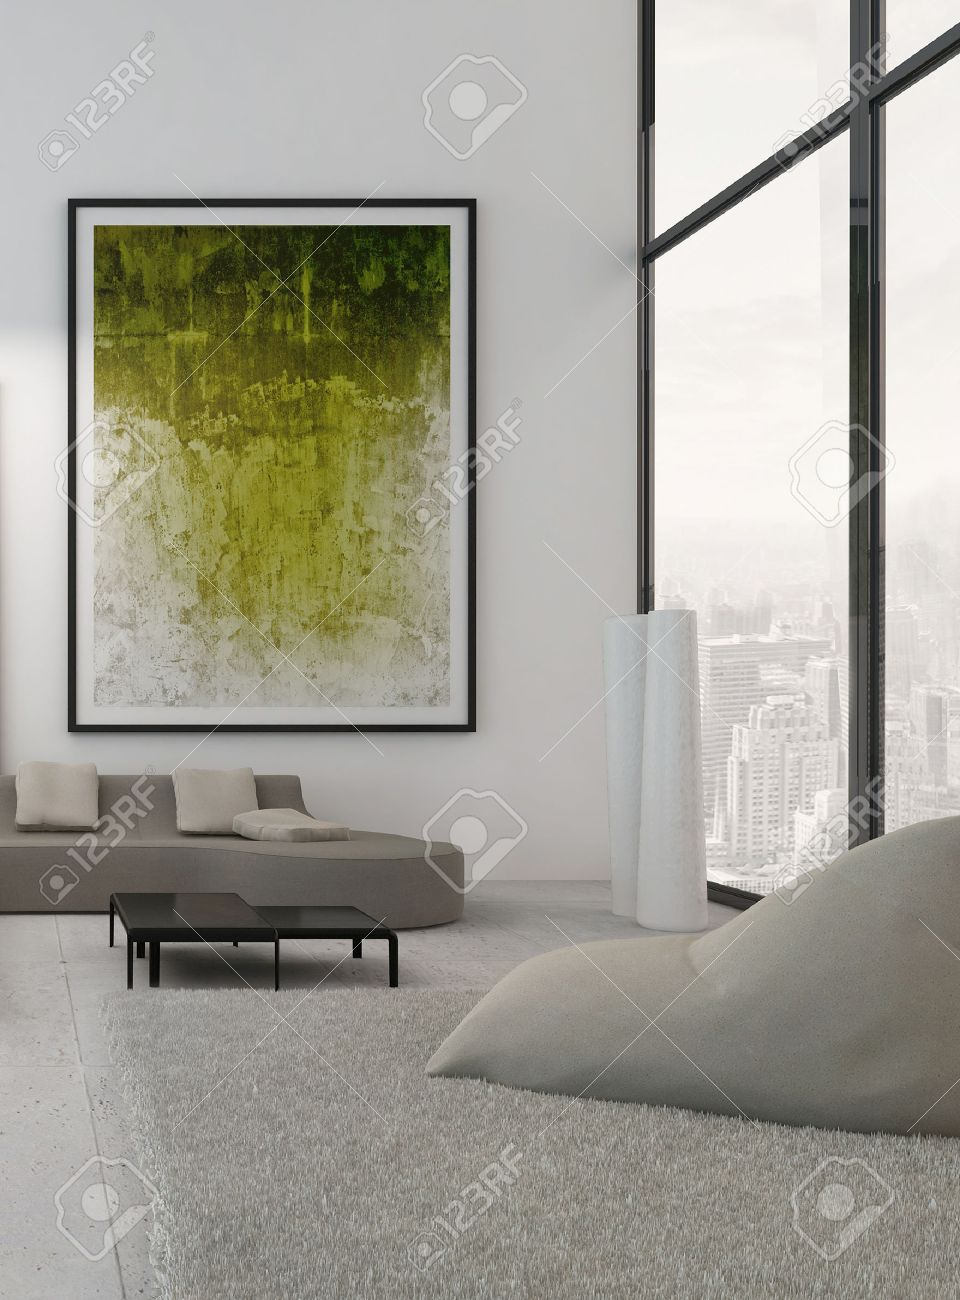 Living Room Paintings Modern Living Room Interior With Green Paintings On Wall